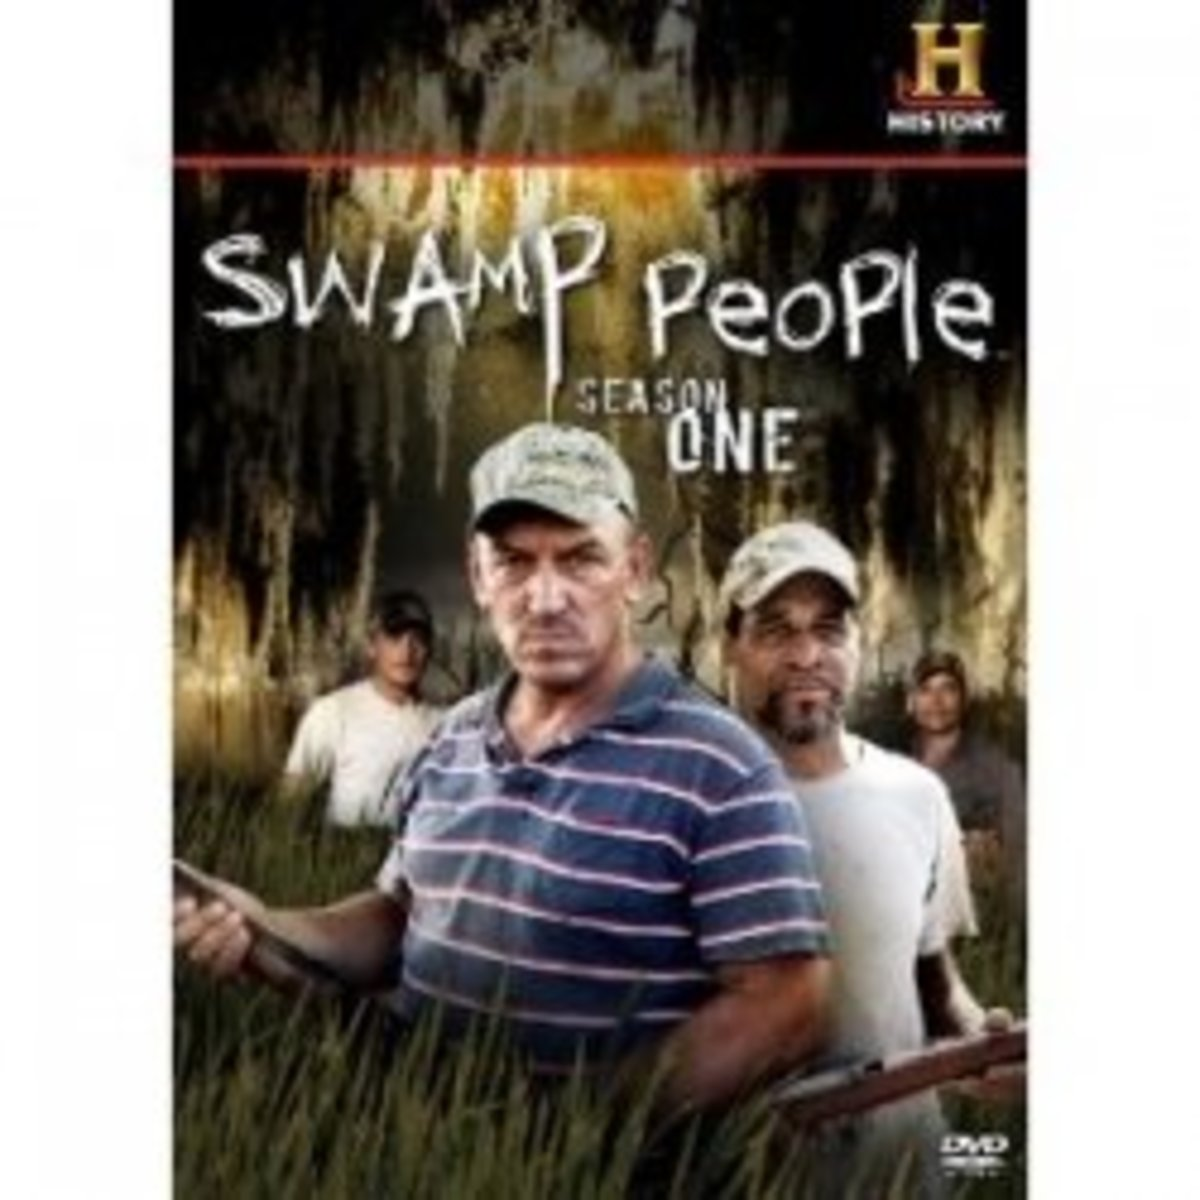 Swamp People; Is it Real or Fake?